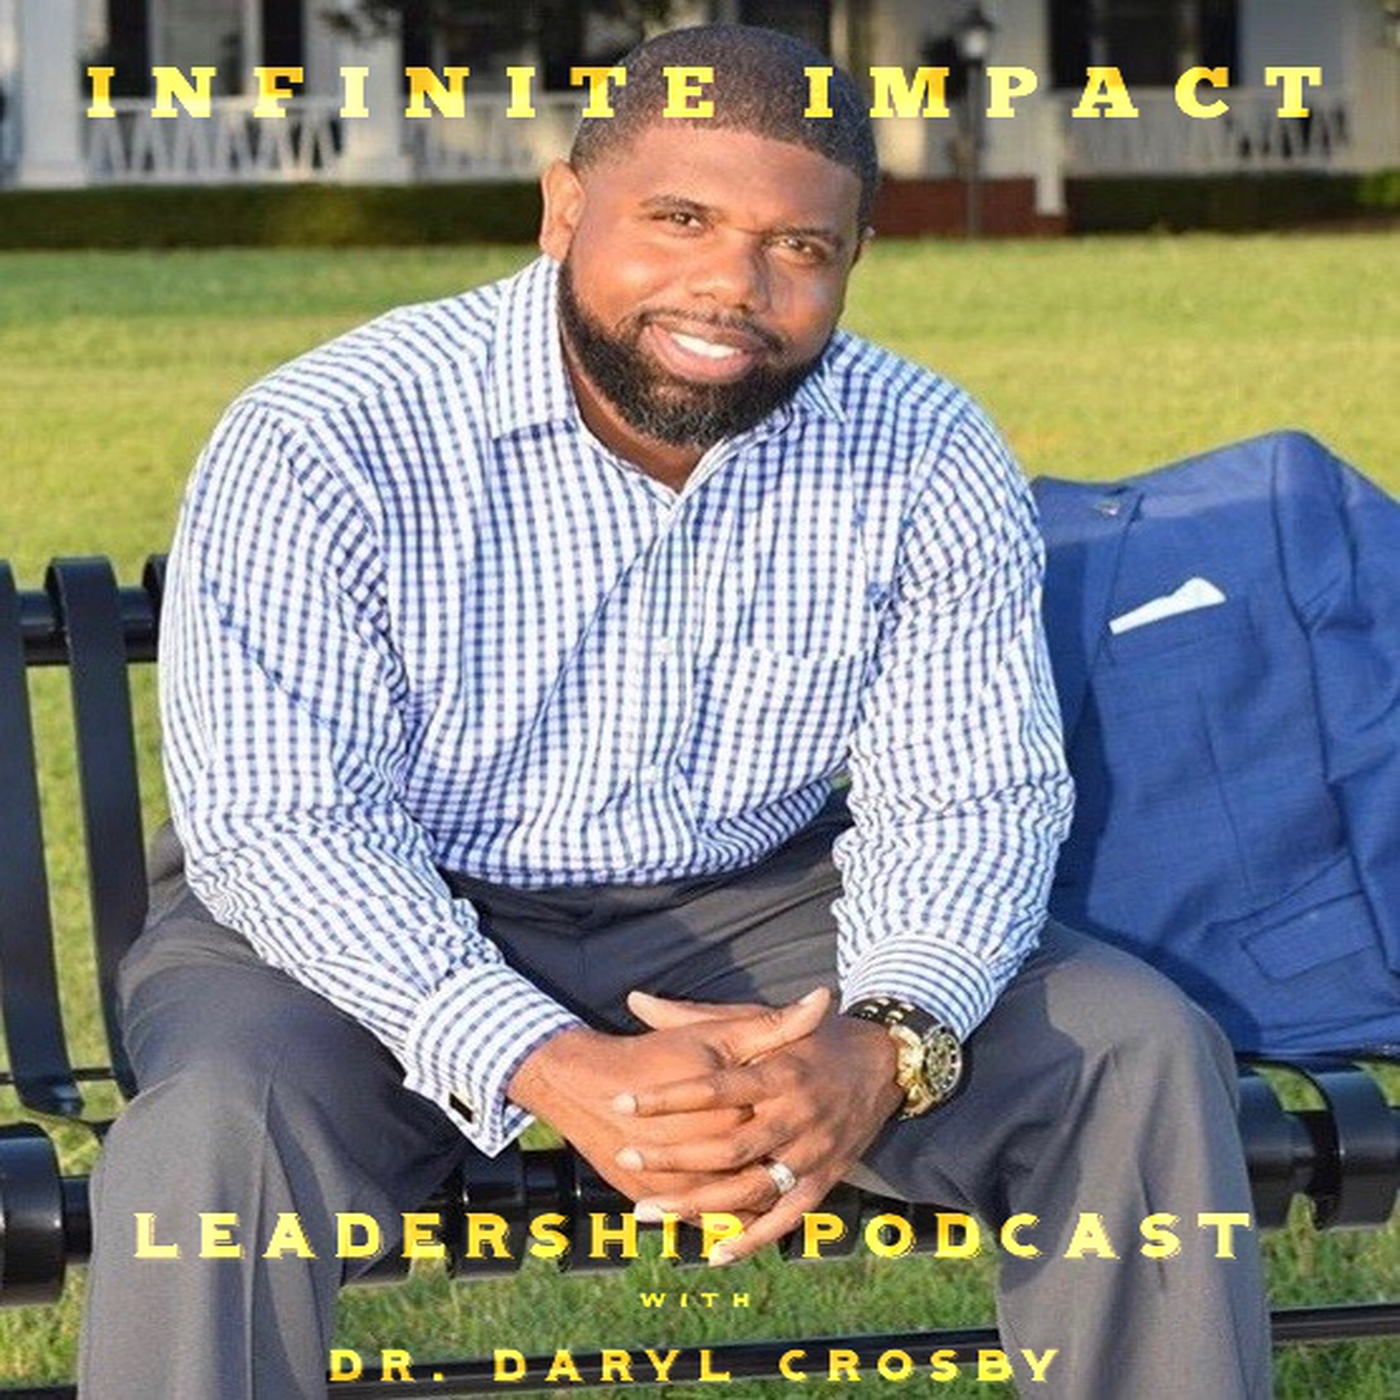 The Infinite Impact Leadership Podcast with Dr. Daryl Crosby